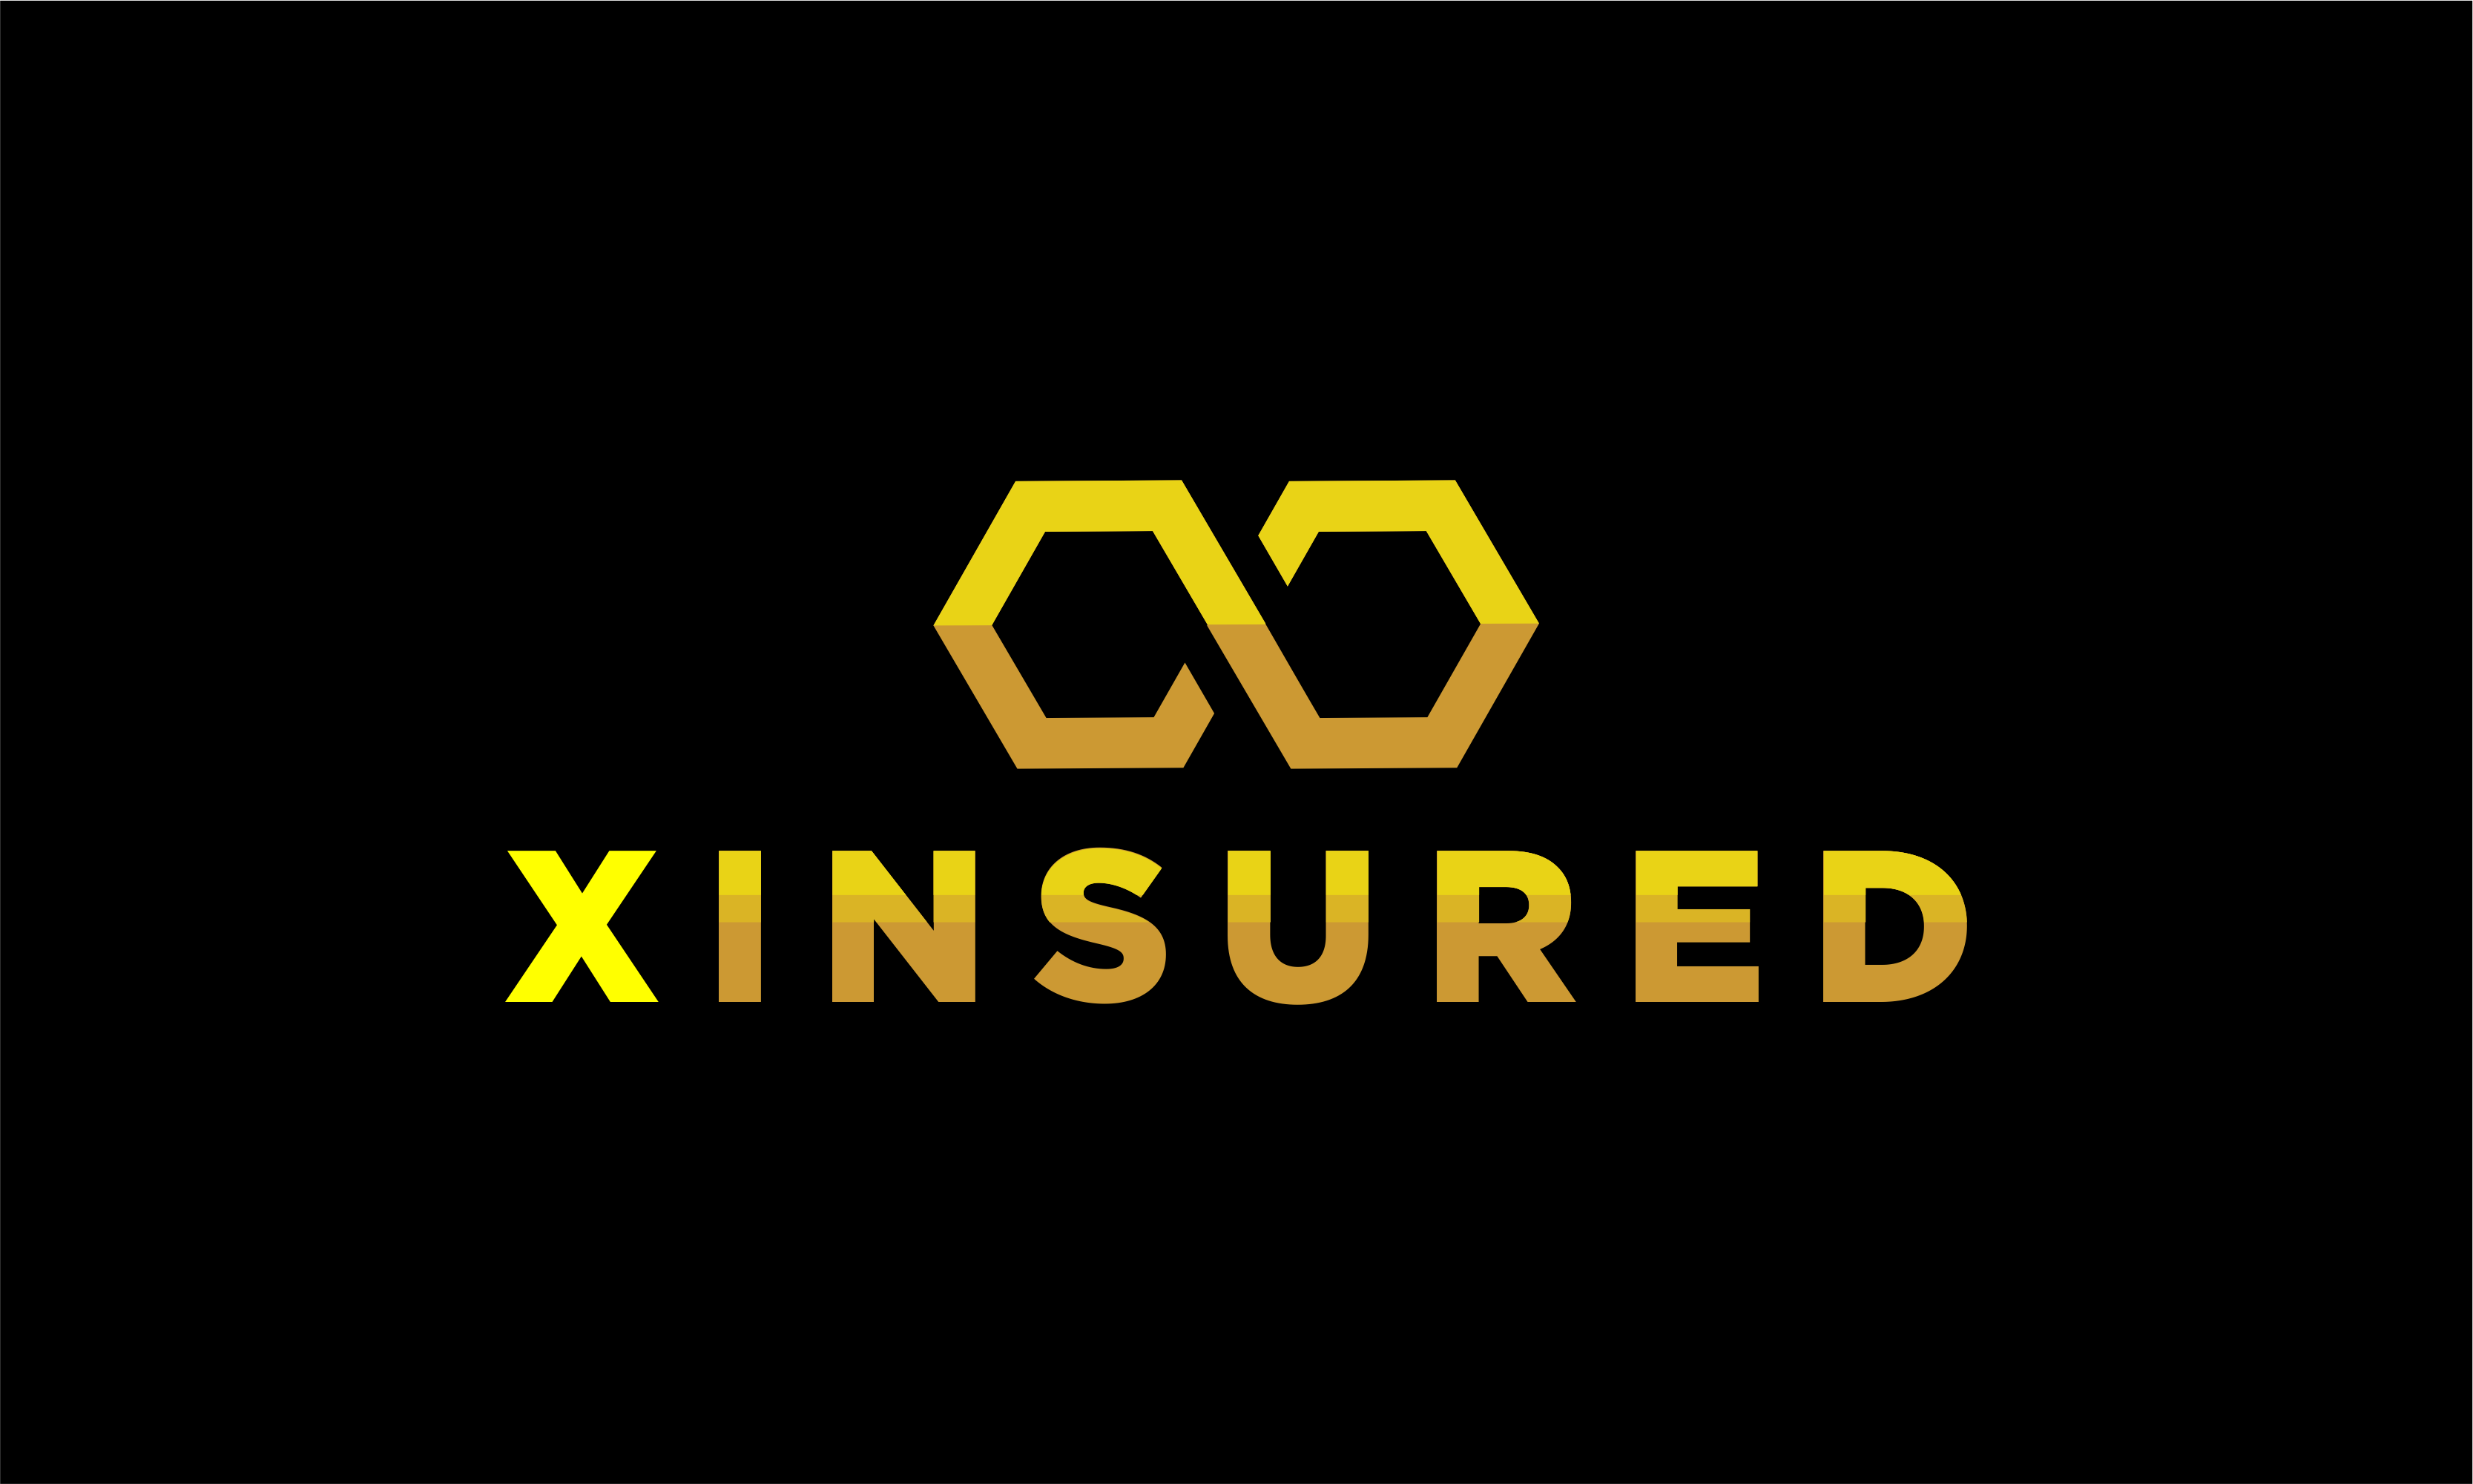 Xinsured